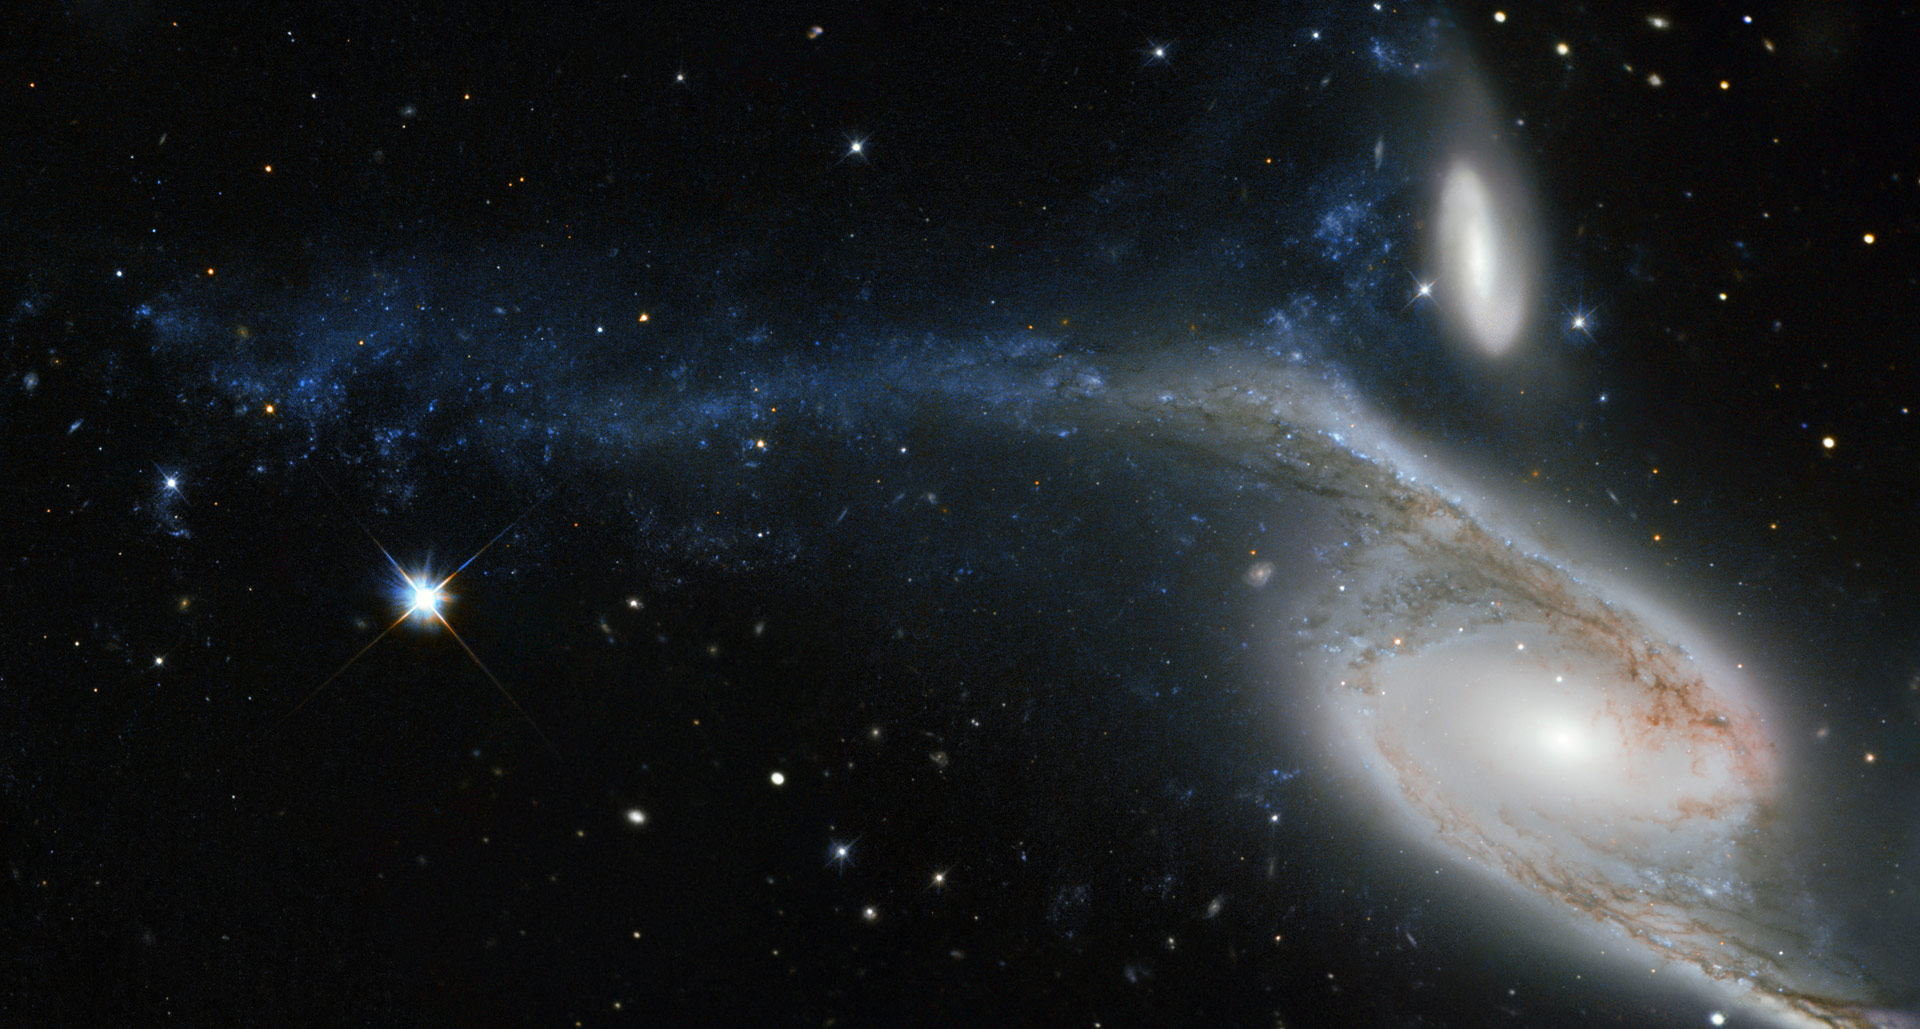 Hubble Views Two Interacting Galaxies